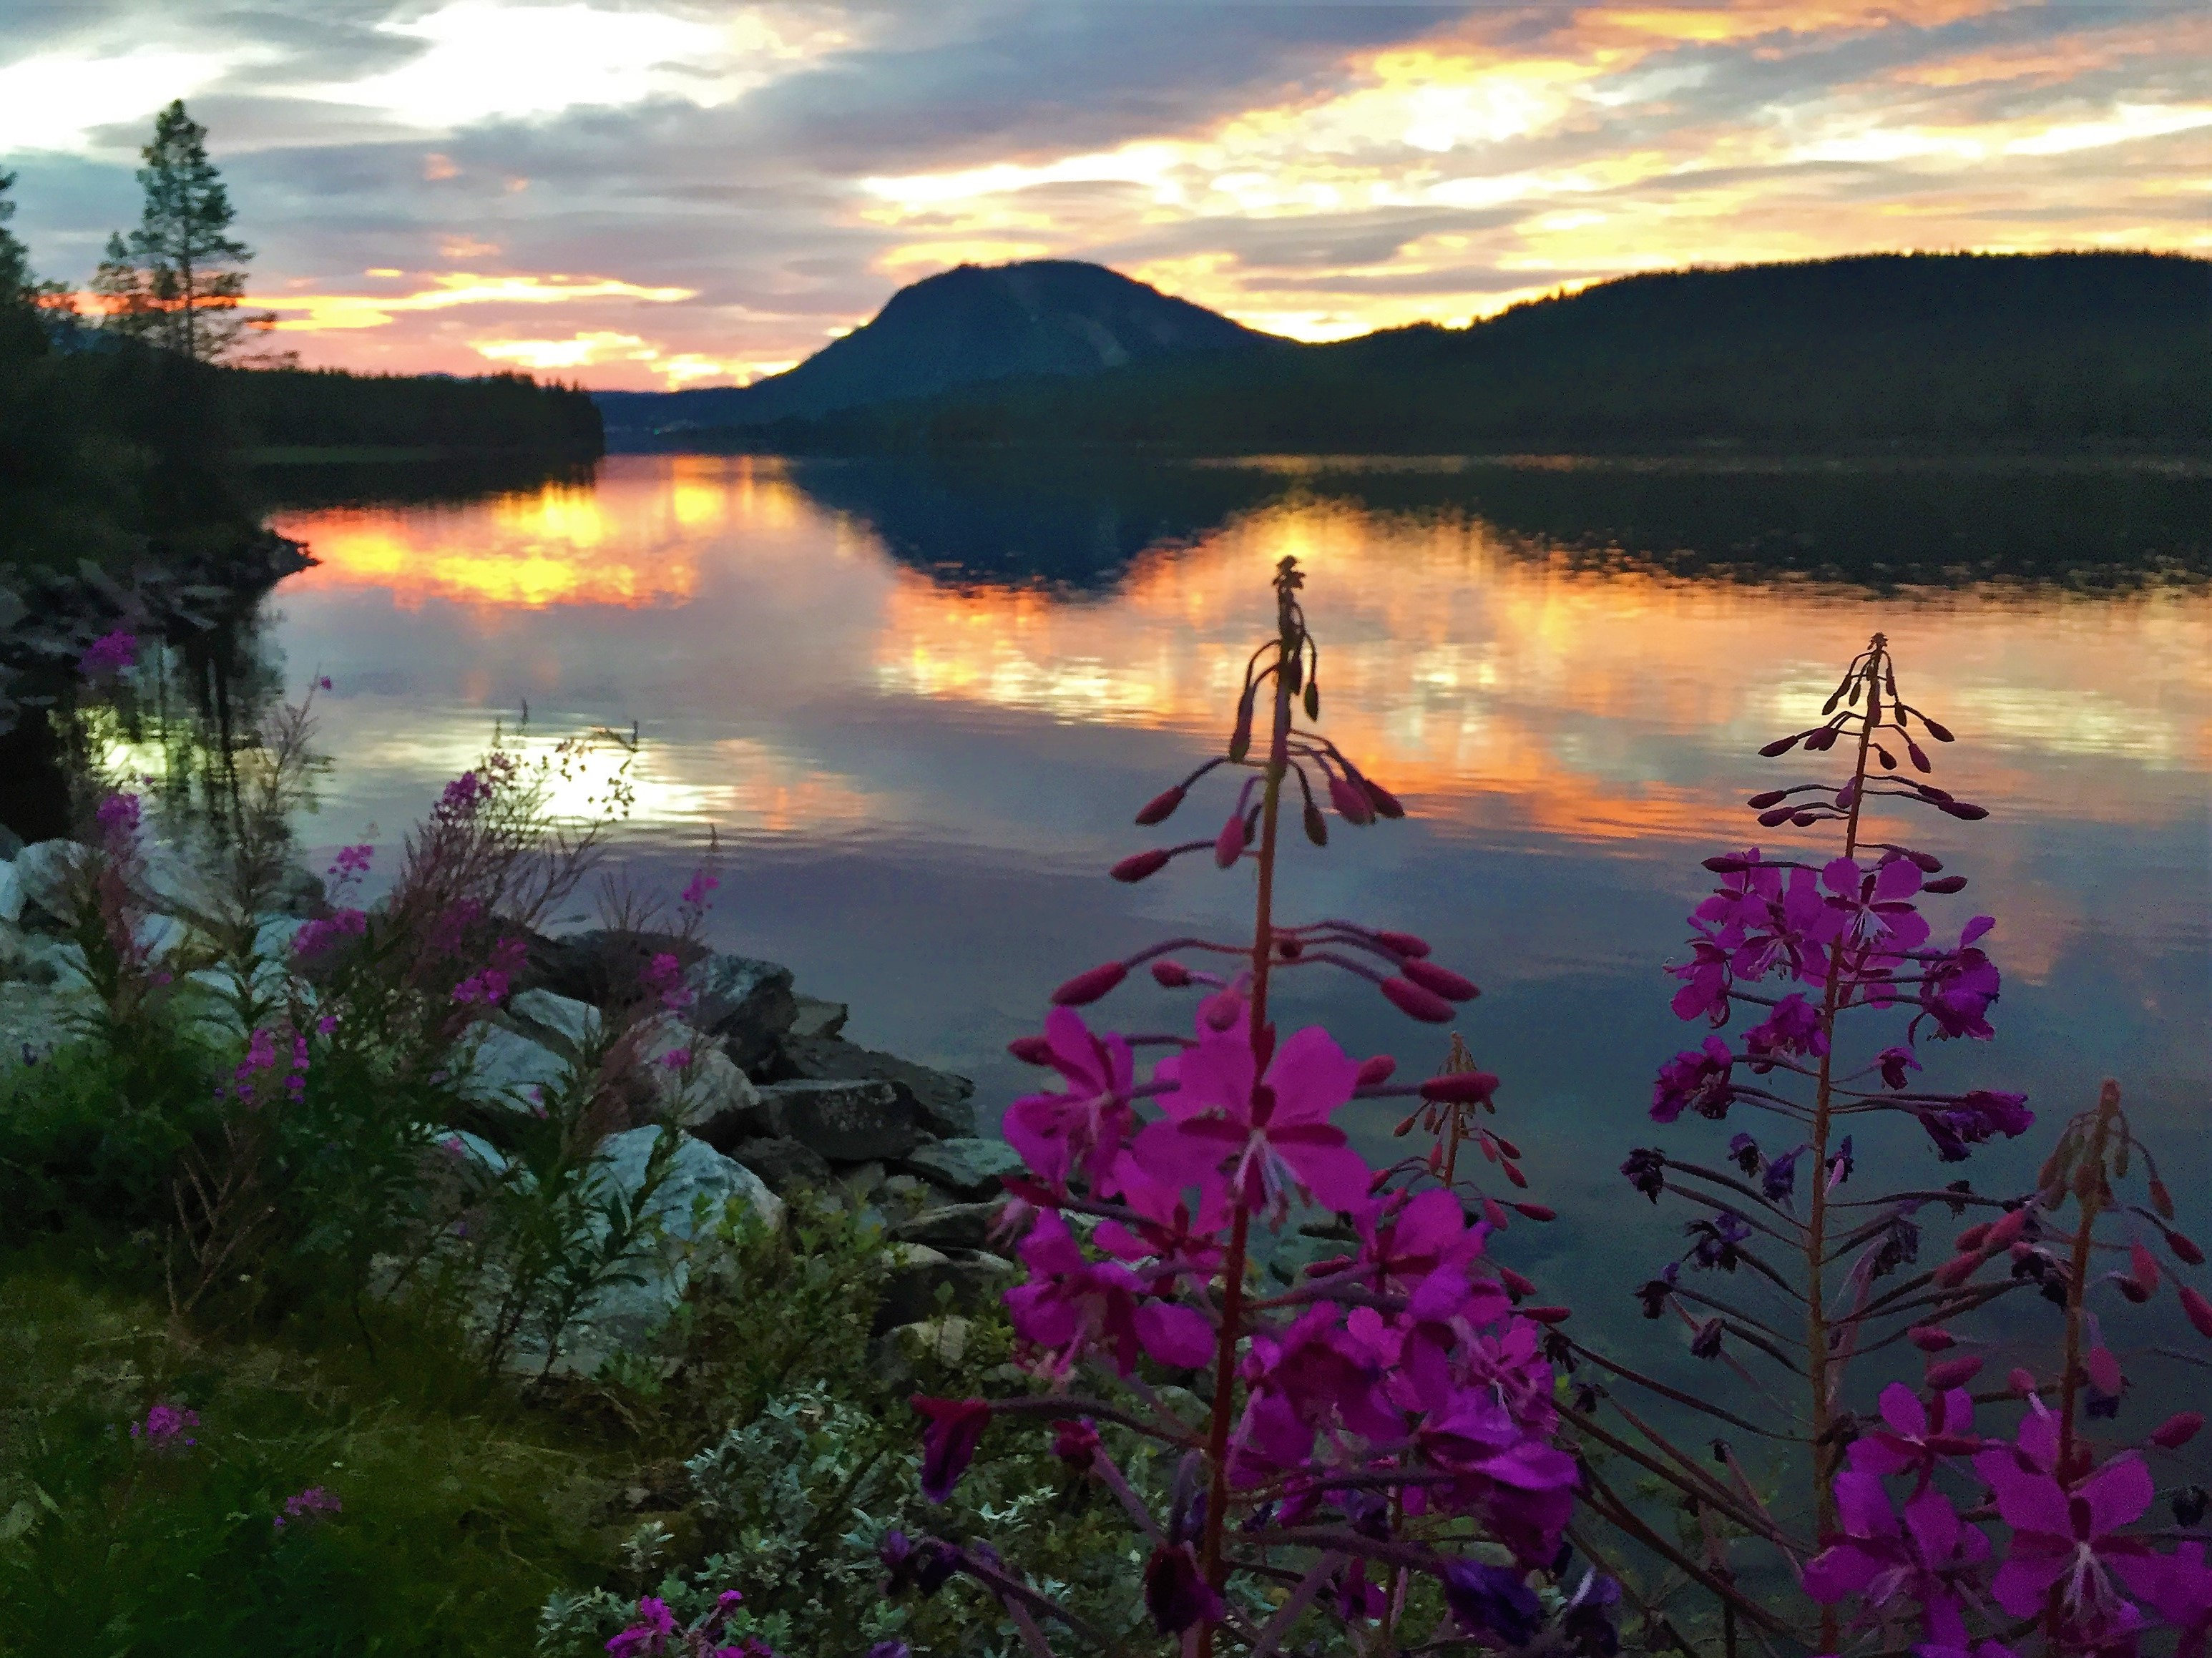 Red flowers and beautiful colors at sunset in Jämtland, Sweden